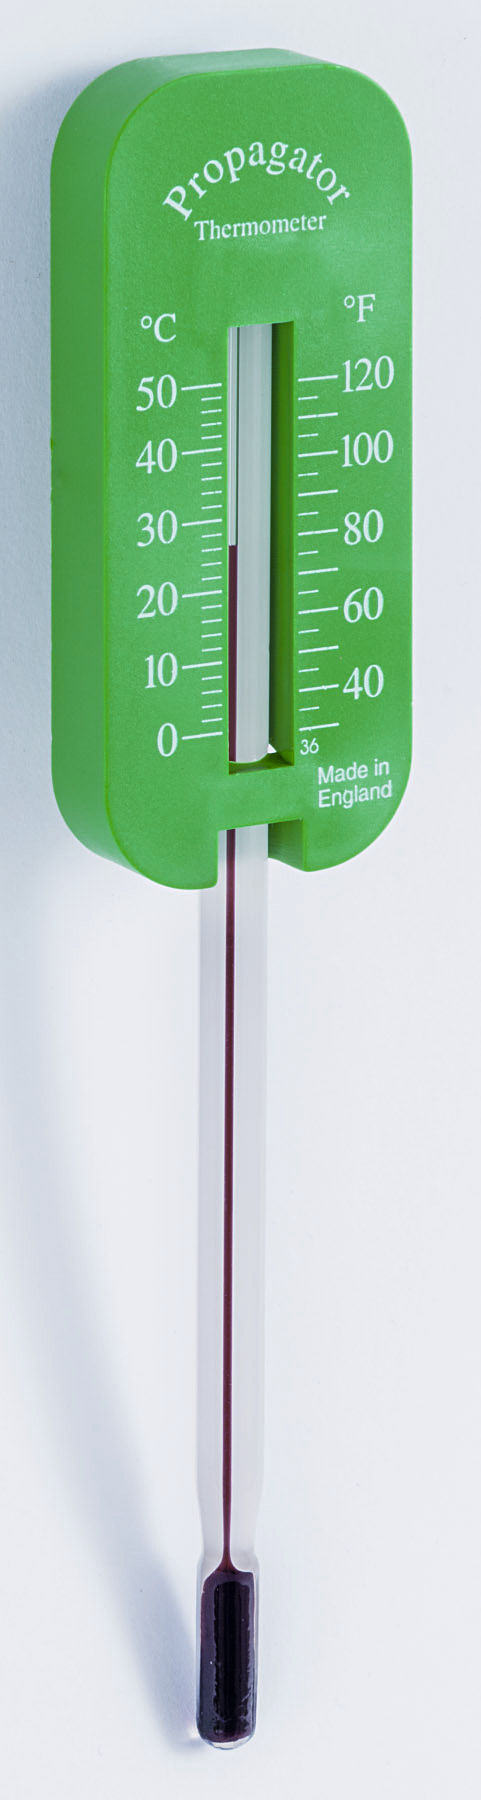 Seed propagation gardman propagation thermometer for Soil thermometer